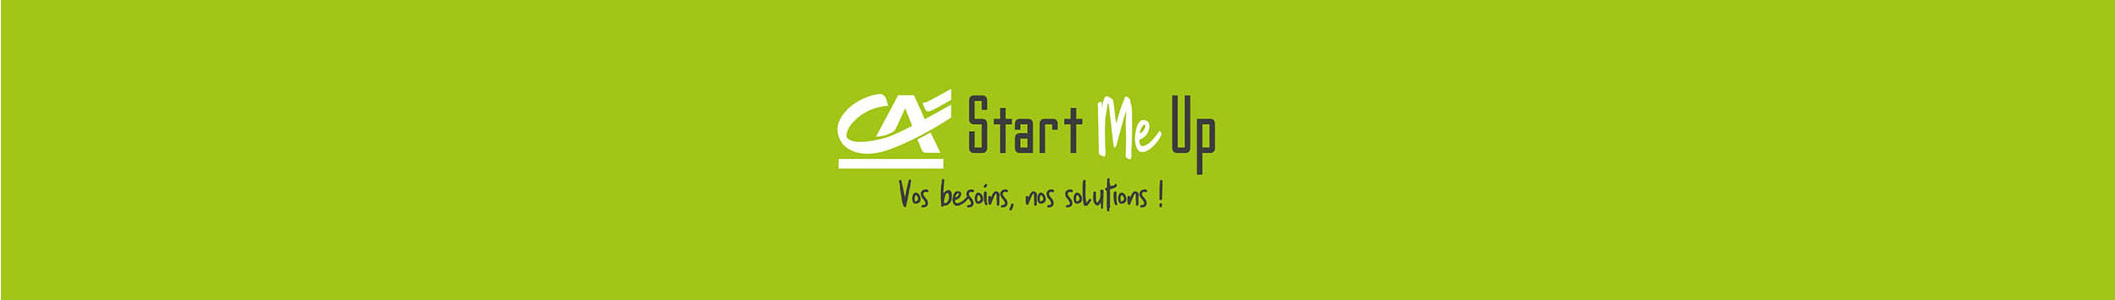 CA Start Me Up, Vos besoins, nos solutions !